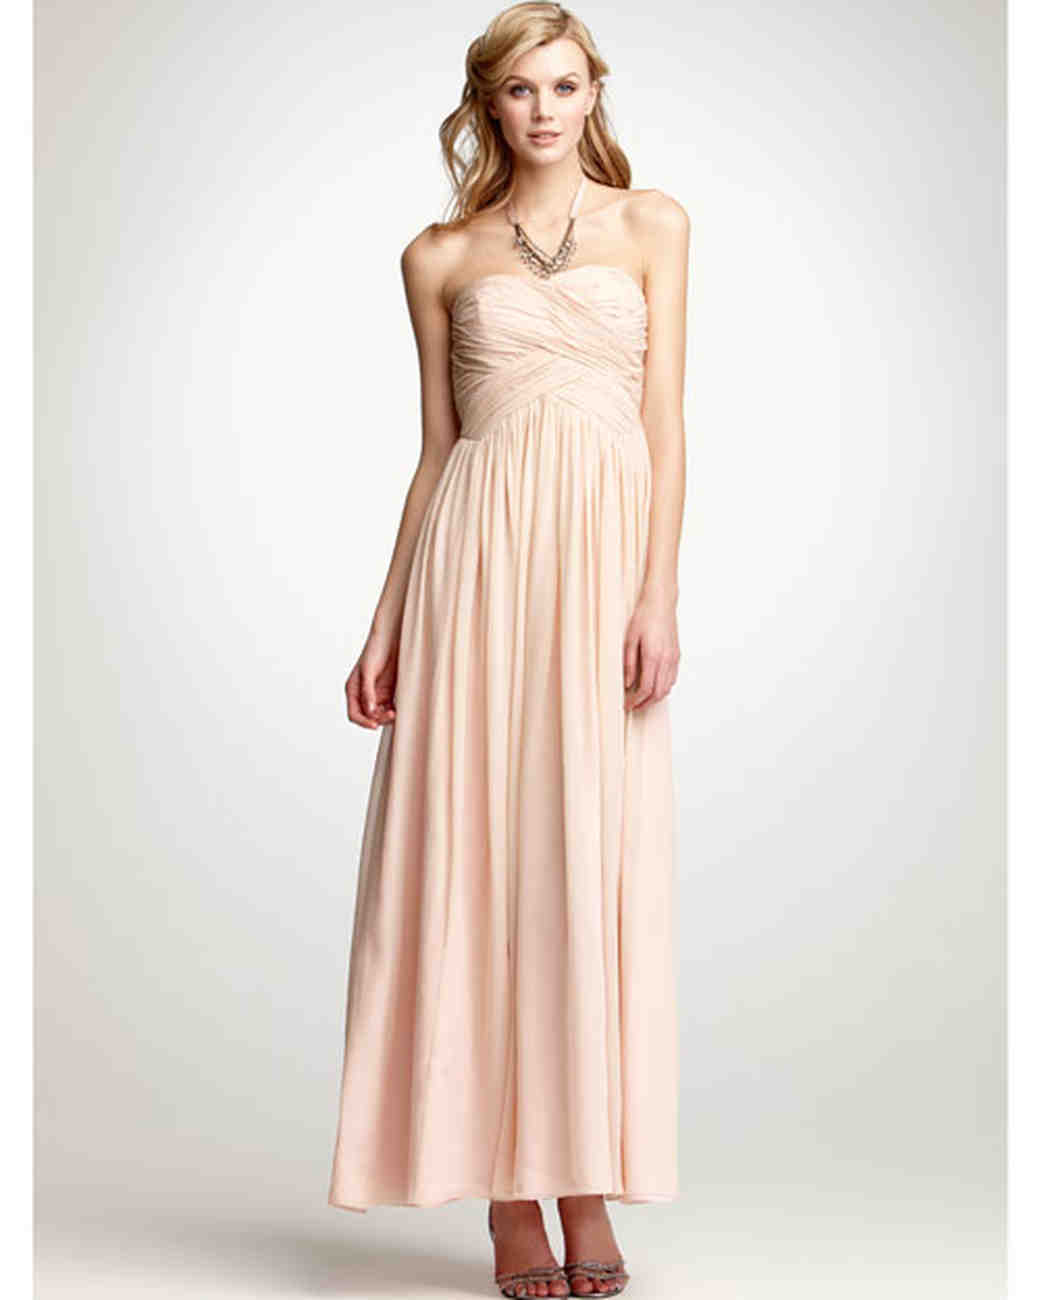 Bridesmaid dresses for beach weddings martha stewart weddings ombrellifo Choice Image